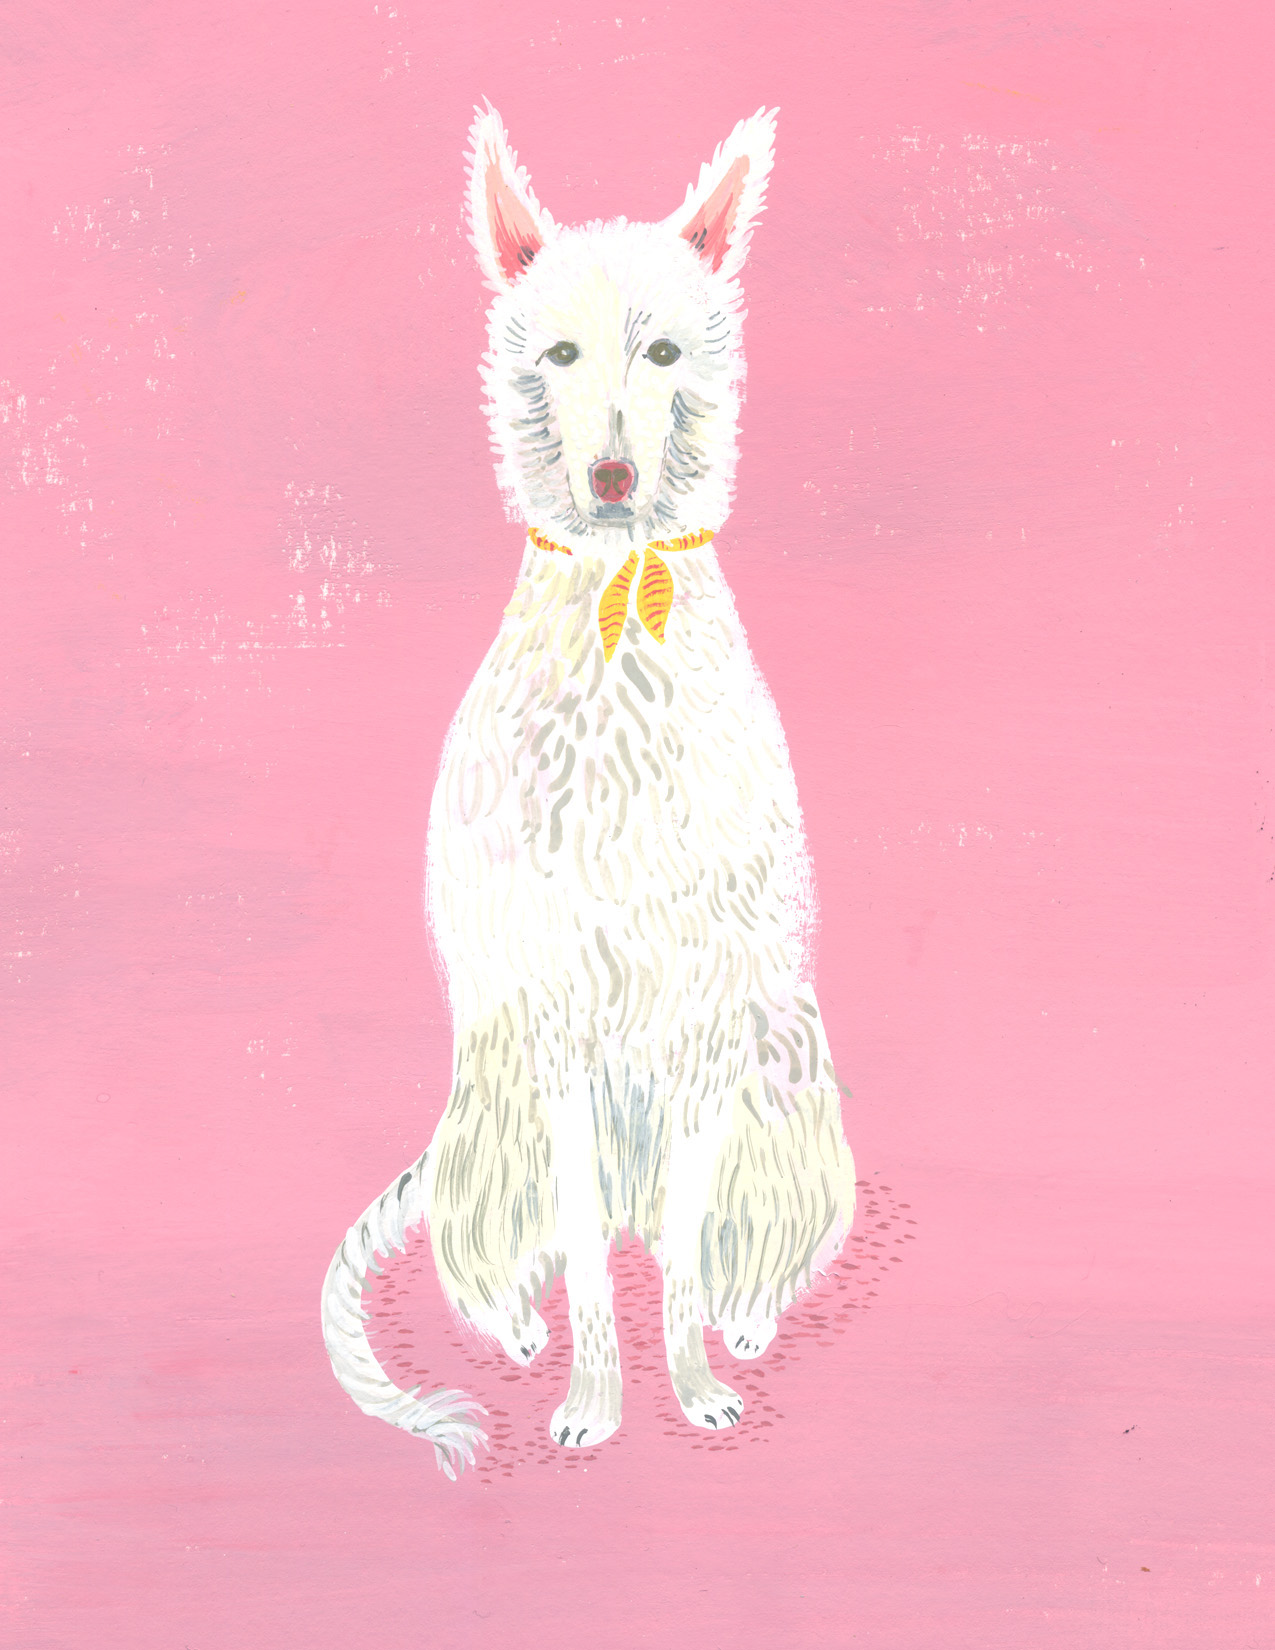 TRINA_100gouache_Dogs2_GermanShepherd.jpg